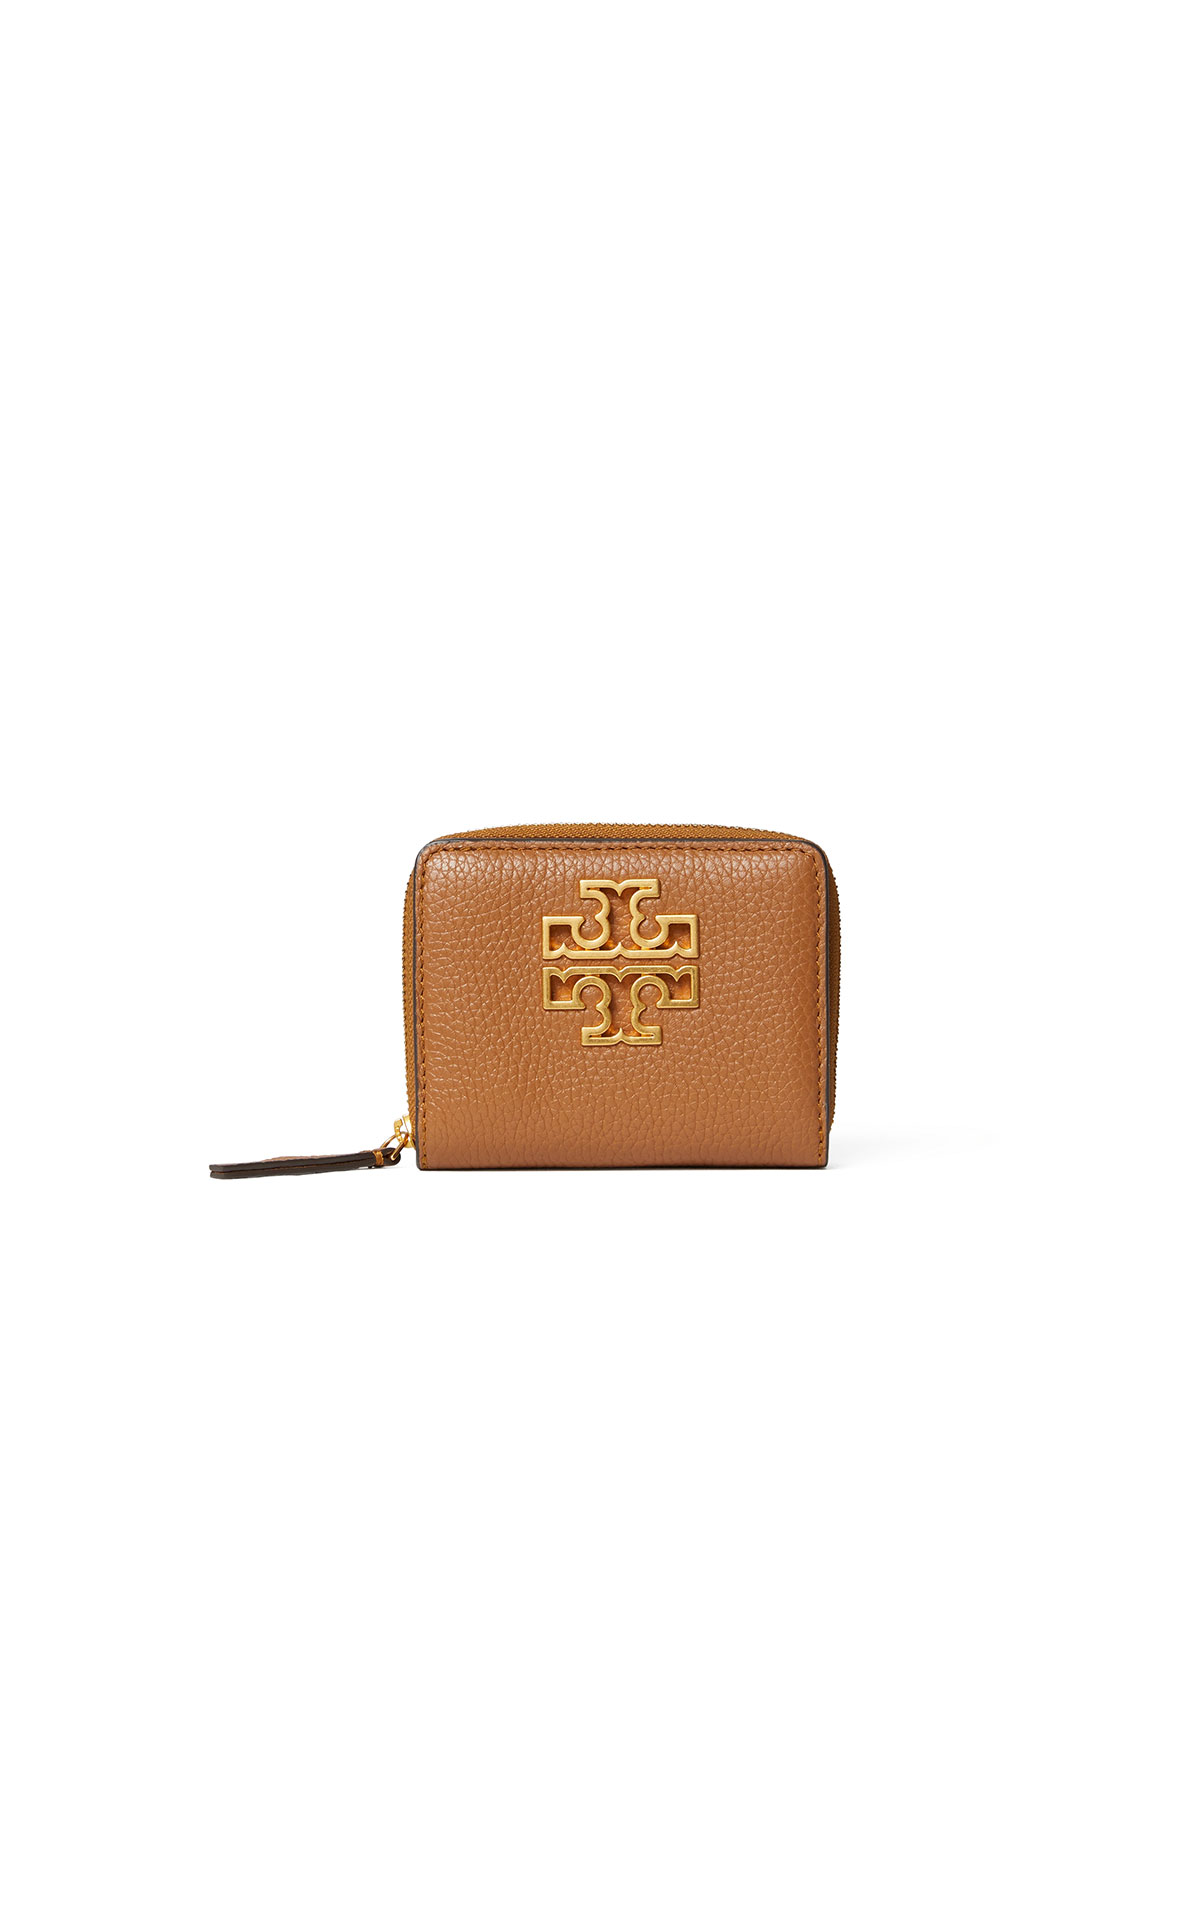 Tory Burch Britten Mini Wallet at the Bicester Village Shopping Collection